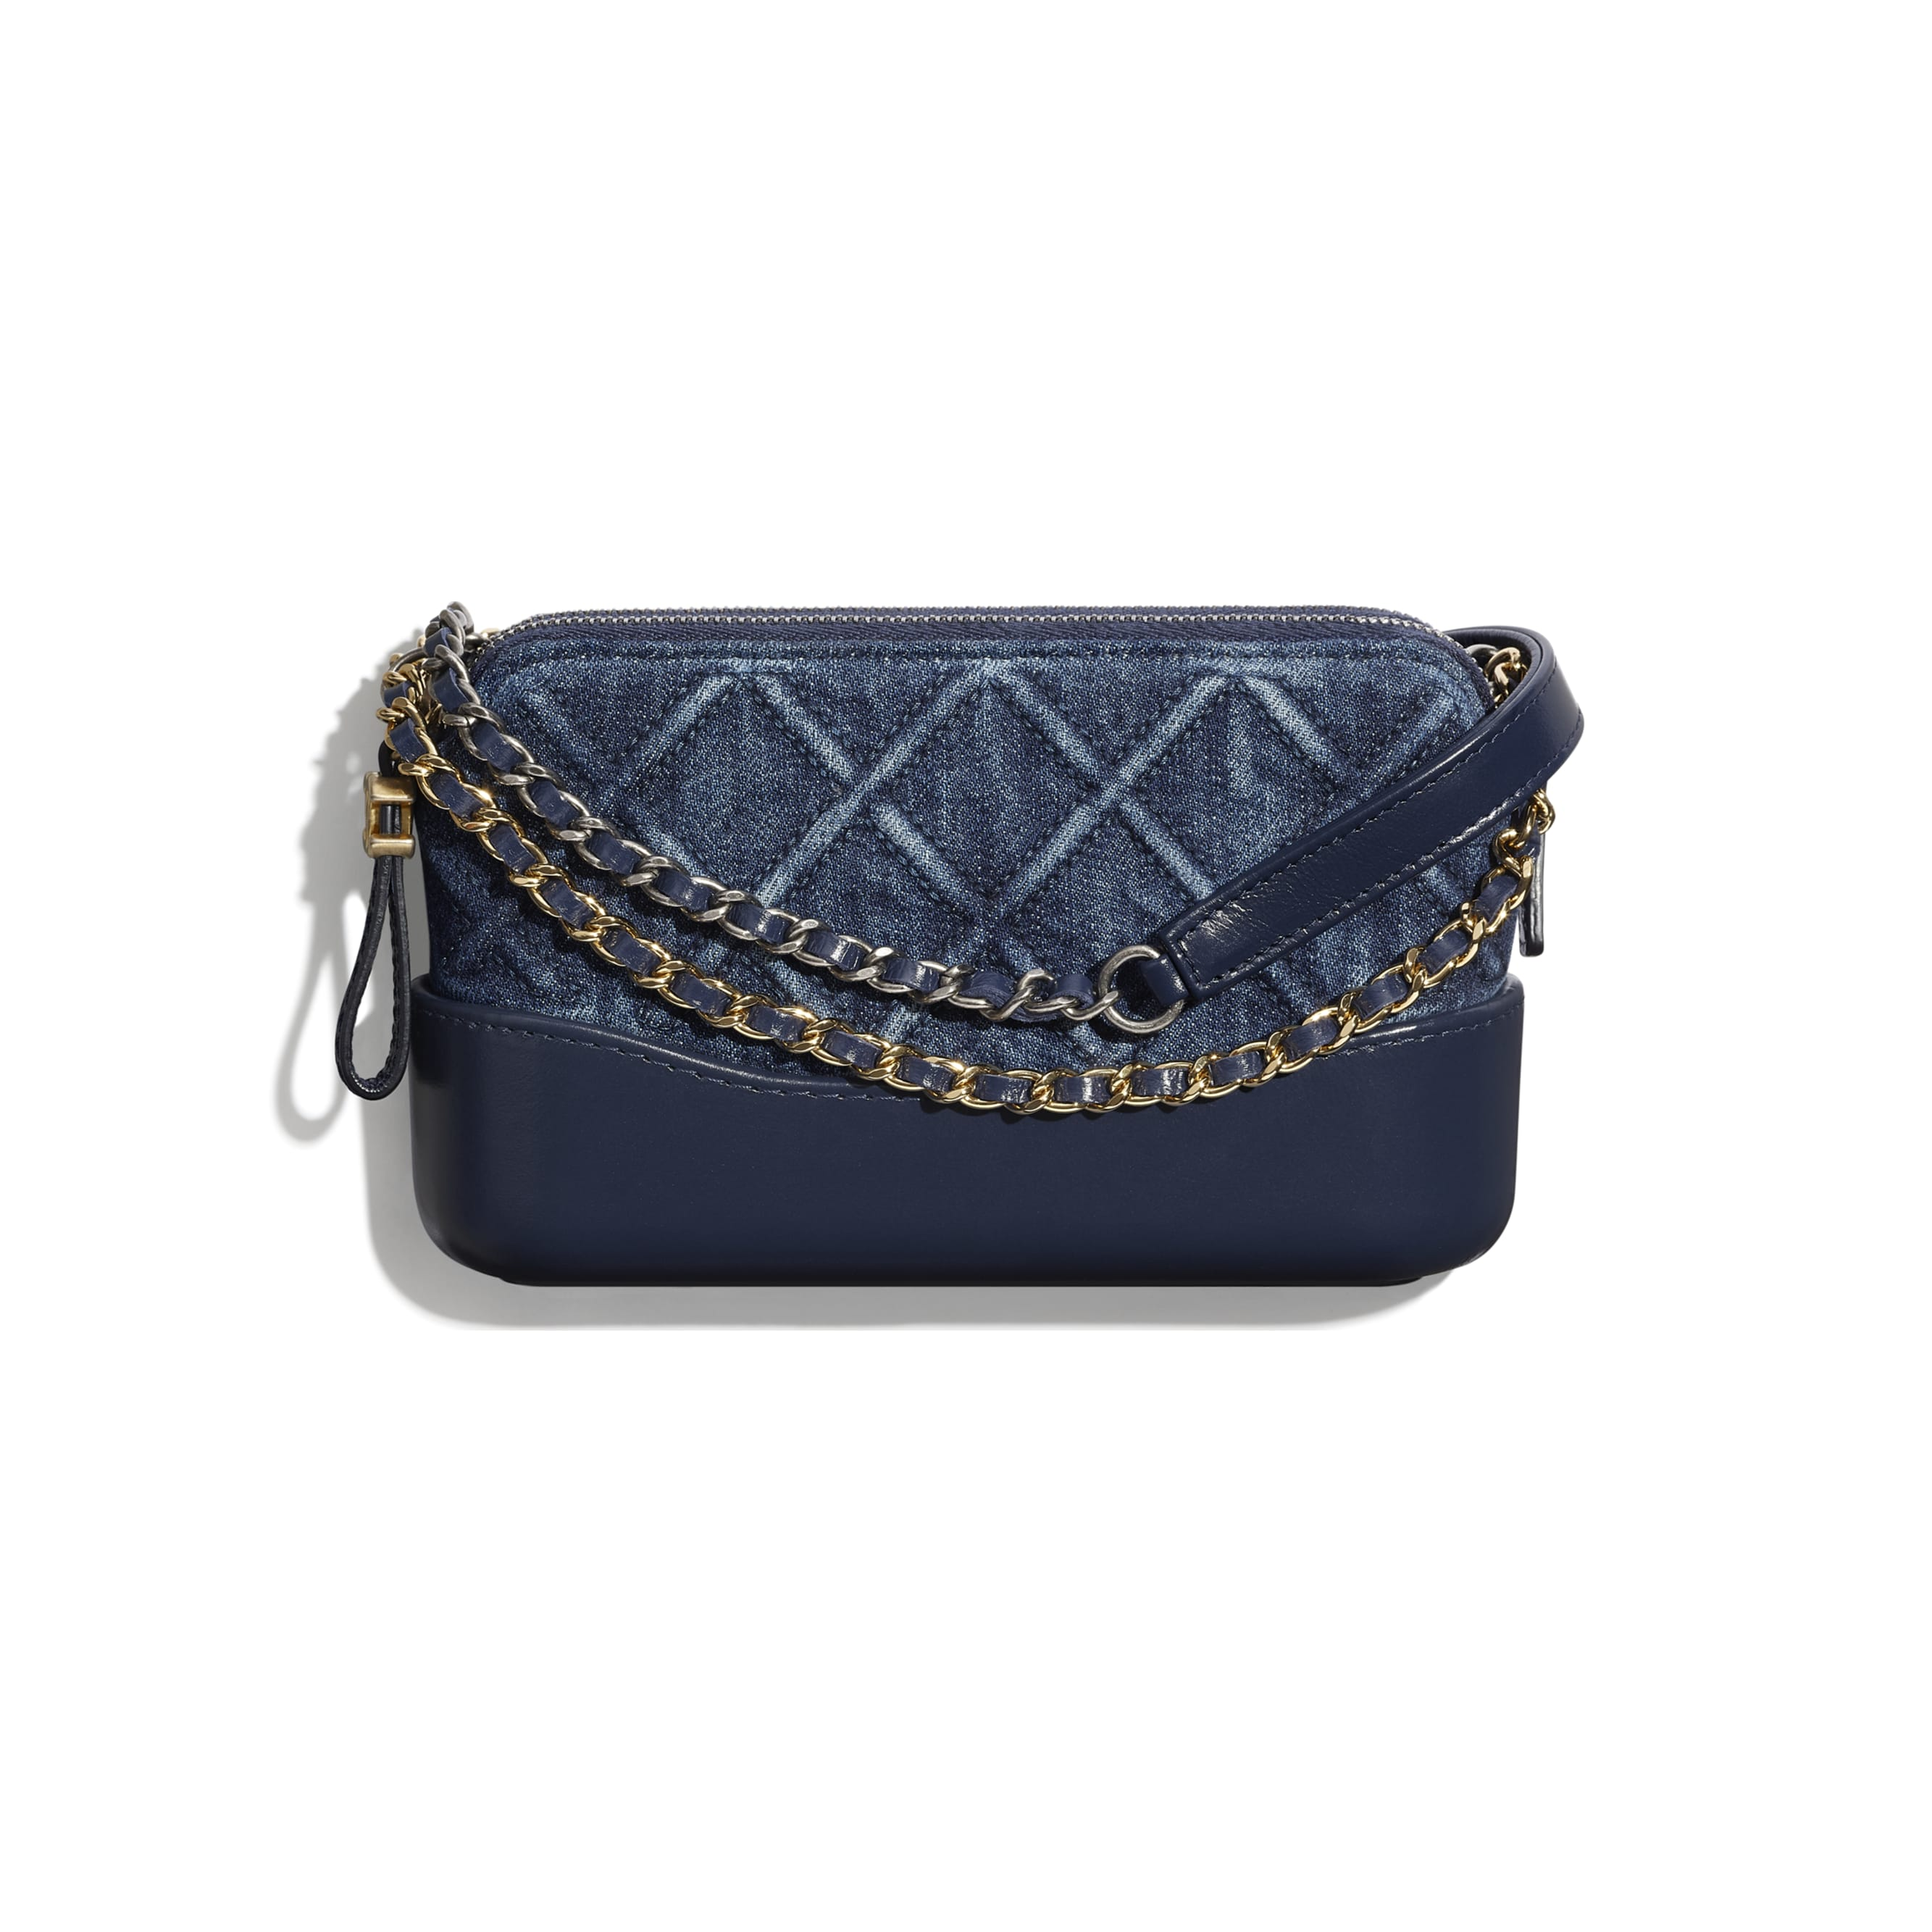 Clutch With Chain - Blue - Denim, Calfskin, Gold-Tone, Silver-Tone & Ruthenium-Finish Metal - CHANEL - Default view - see standard sized version